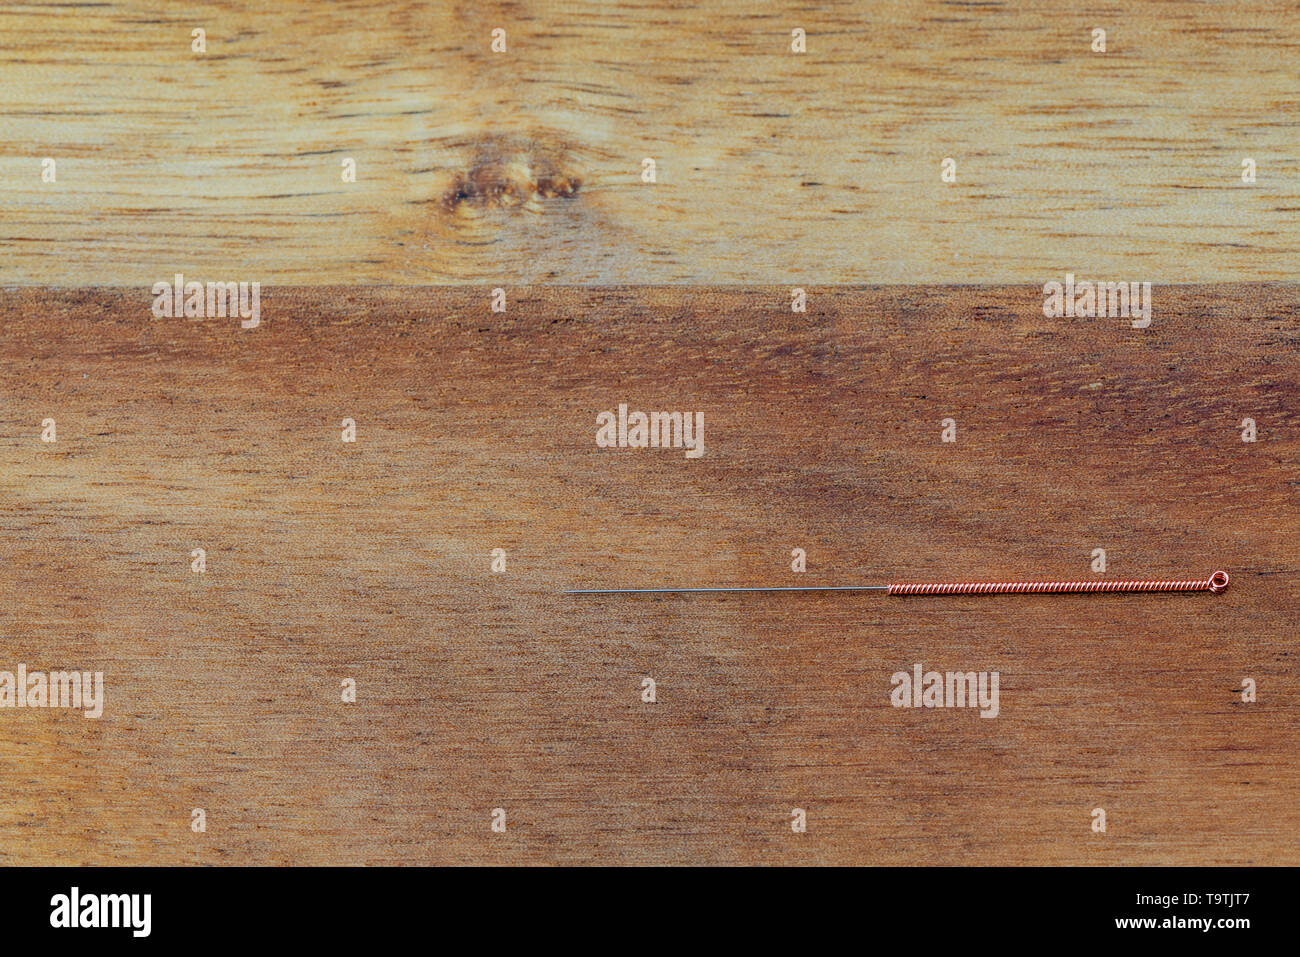 Traditional copper handle acupuncture needles for acupuncture and dry needling on a wood background - Stock Image